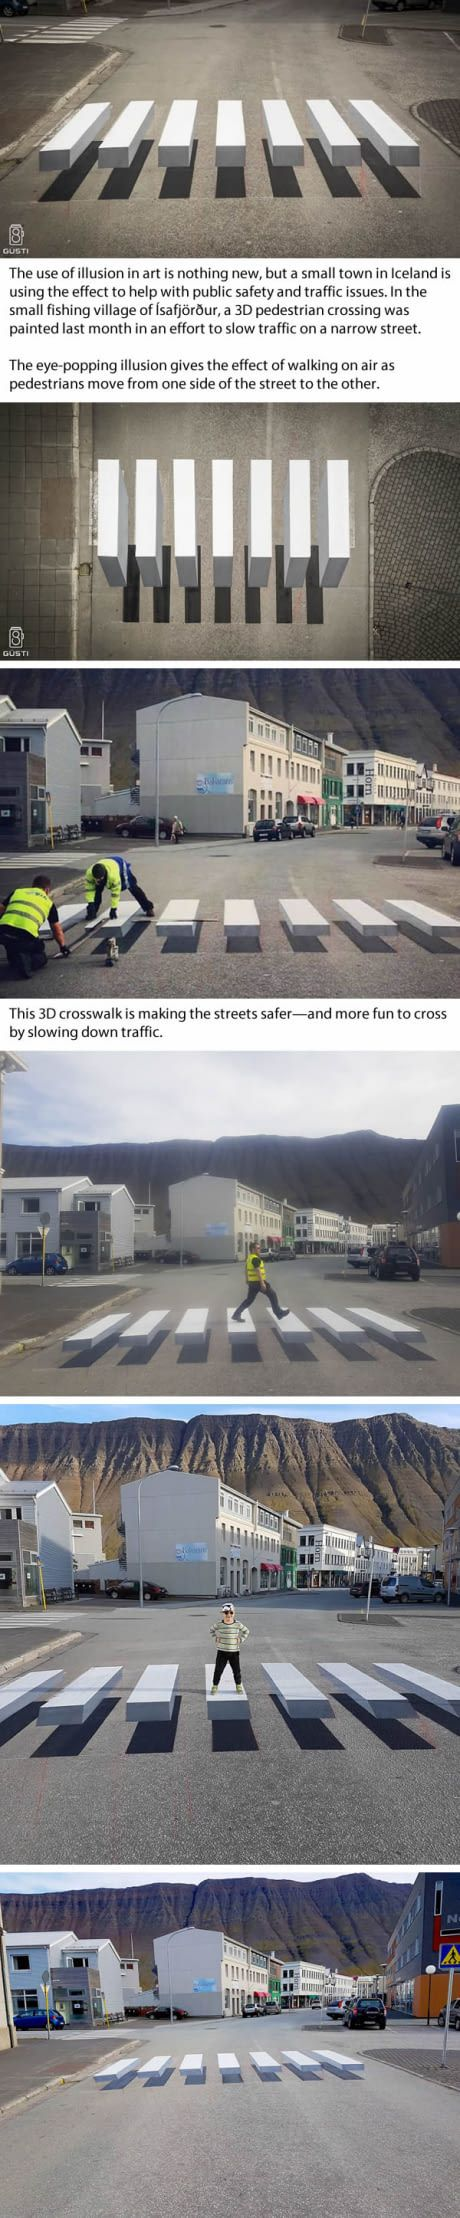 Iceland Has 3D Zebra Stripe Crosswalk with Stunning Optical Illusion